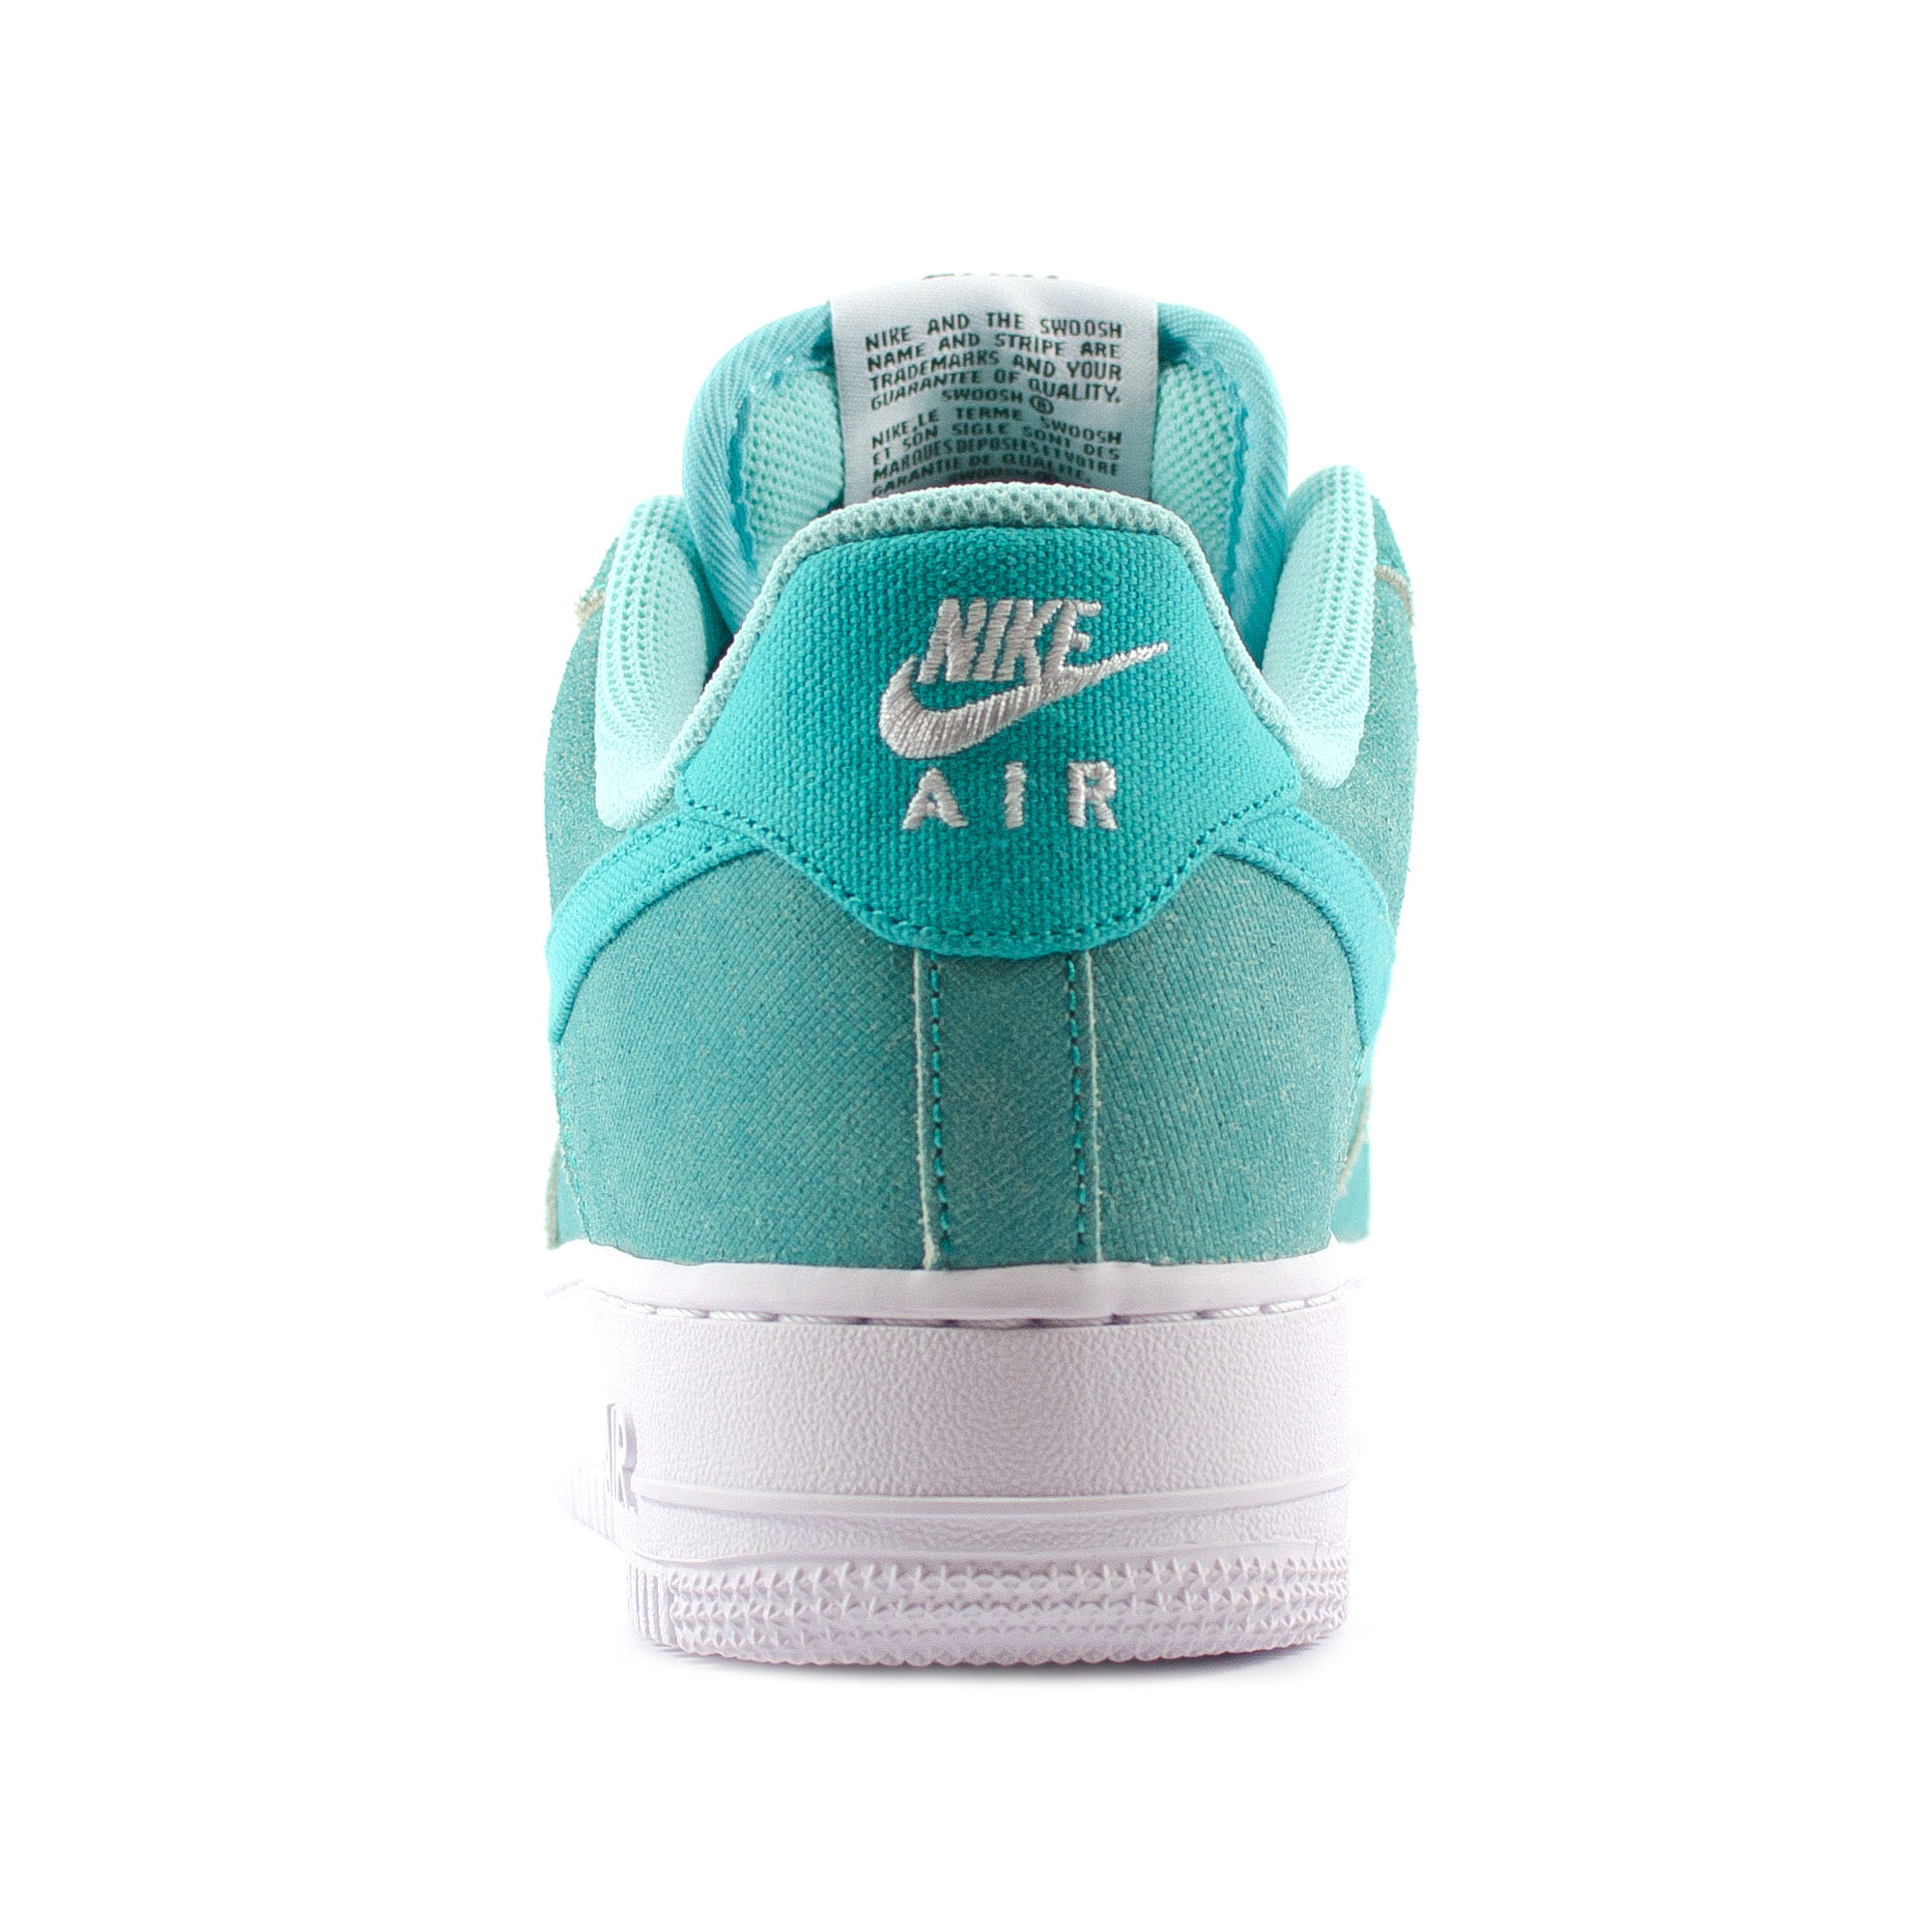 nike air force 1 verde acqua